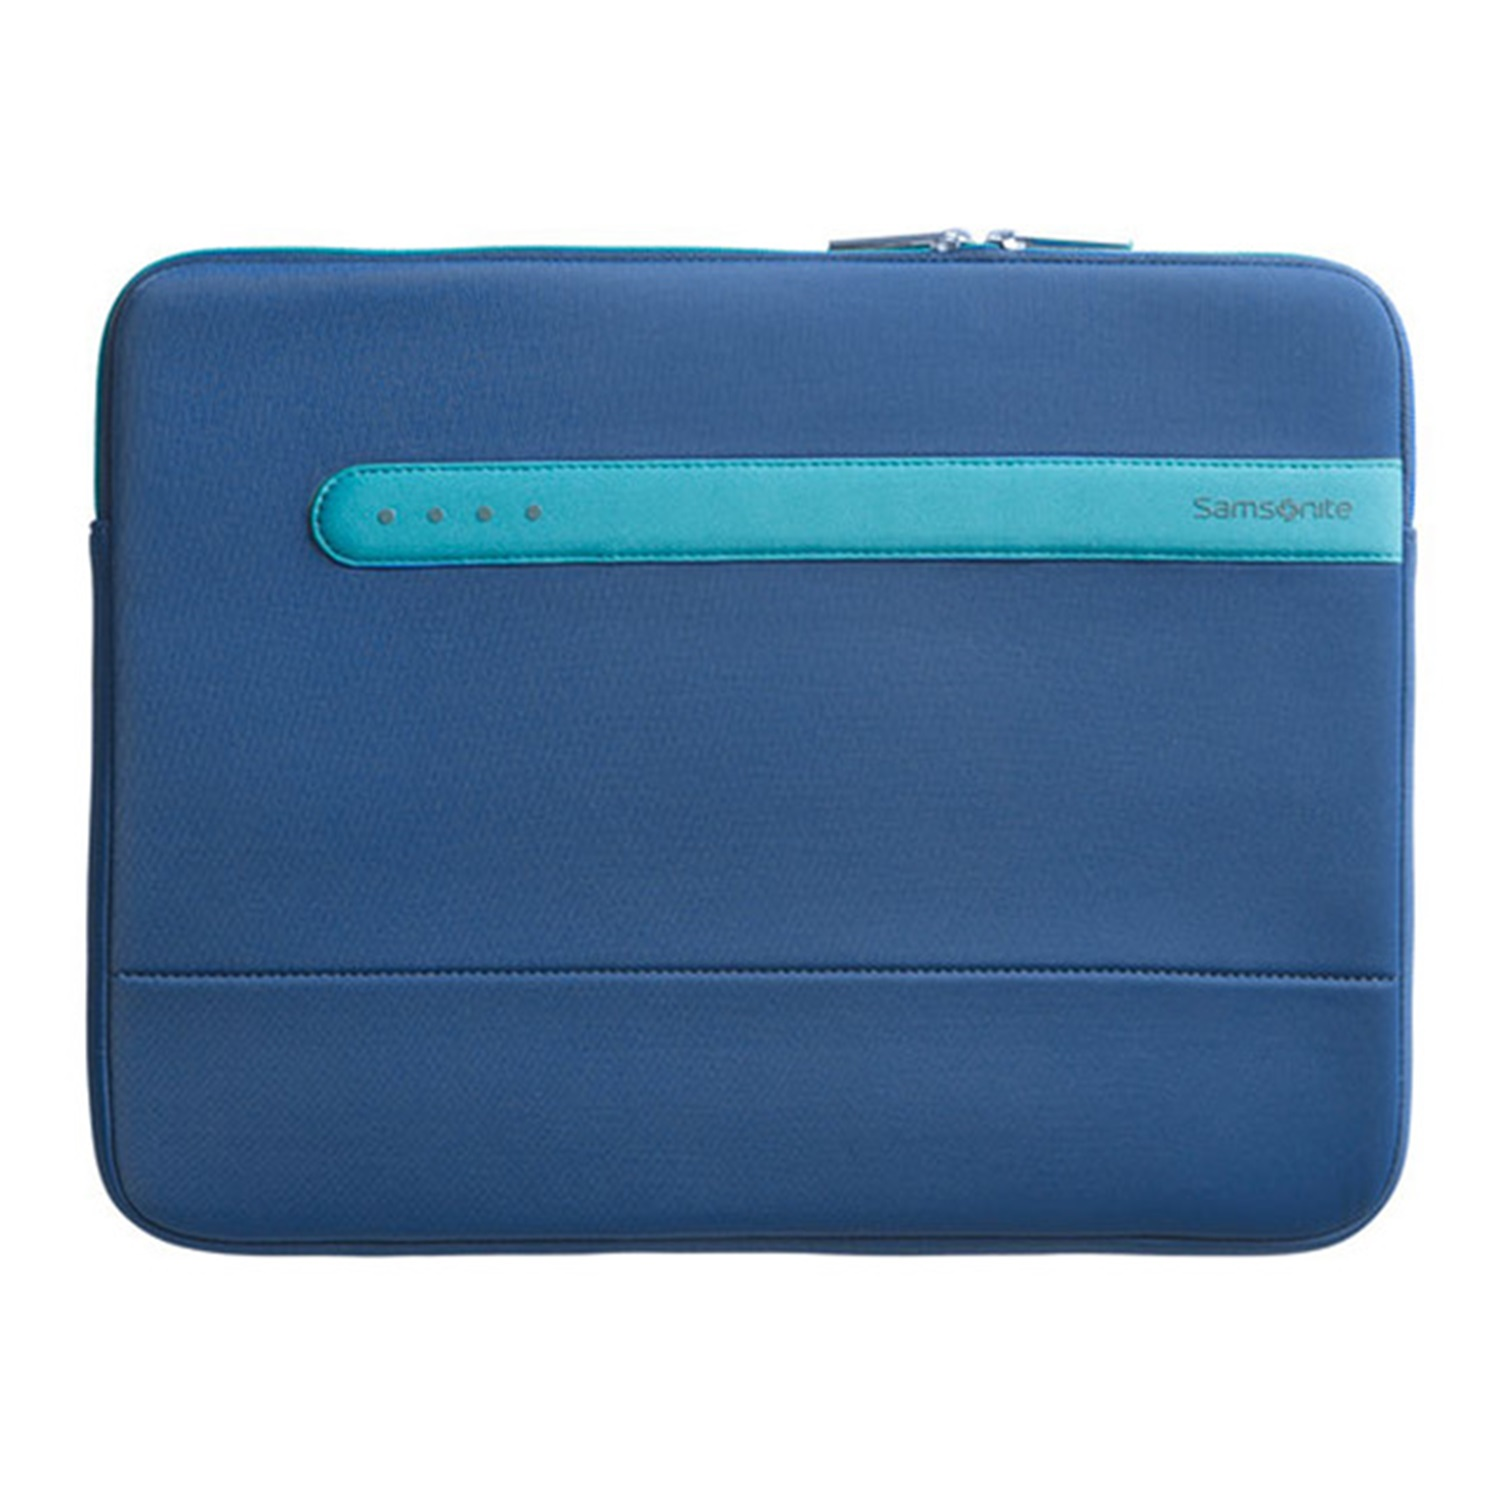 SAMSONITE - BORSE NOTEBOOK - 5414847442933